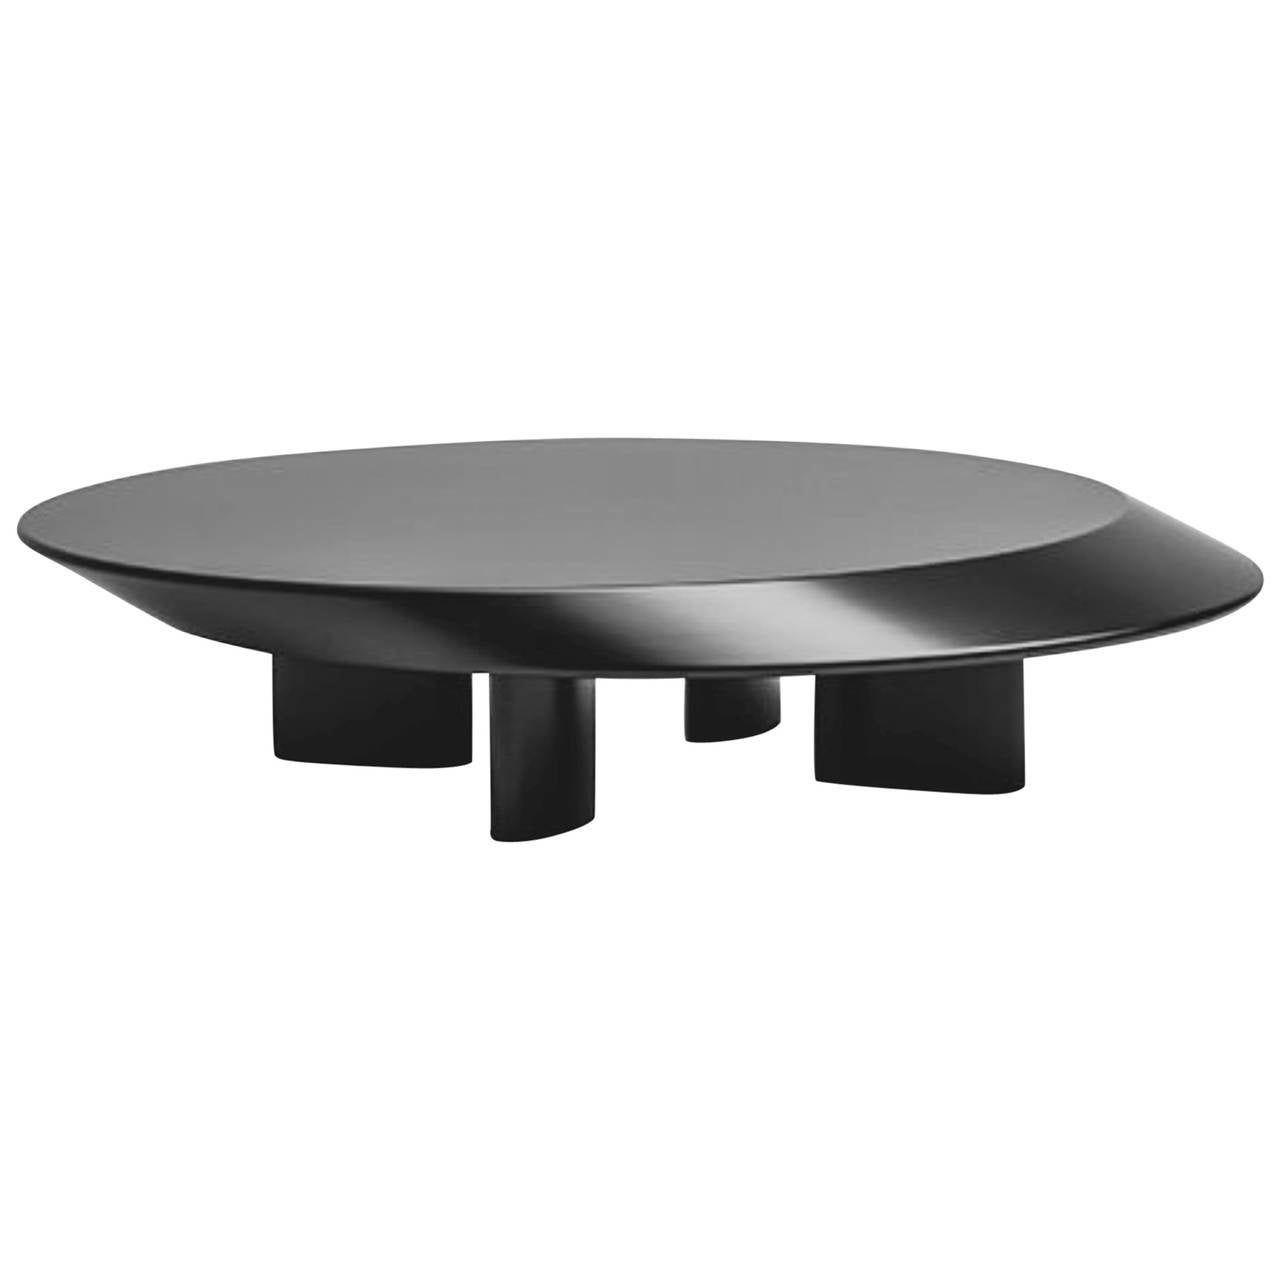 Sculptural Coffee Tables Sculptural Coffee Table By Charlotte Perriand At 1stdibs